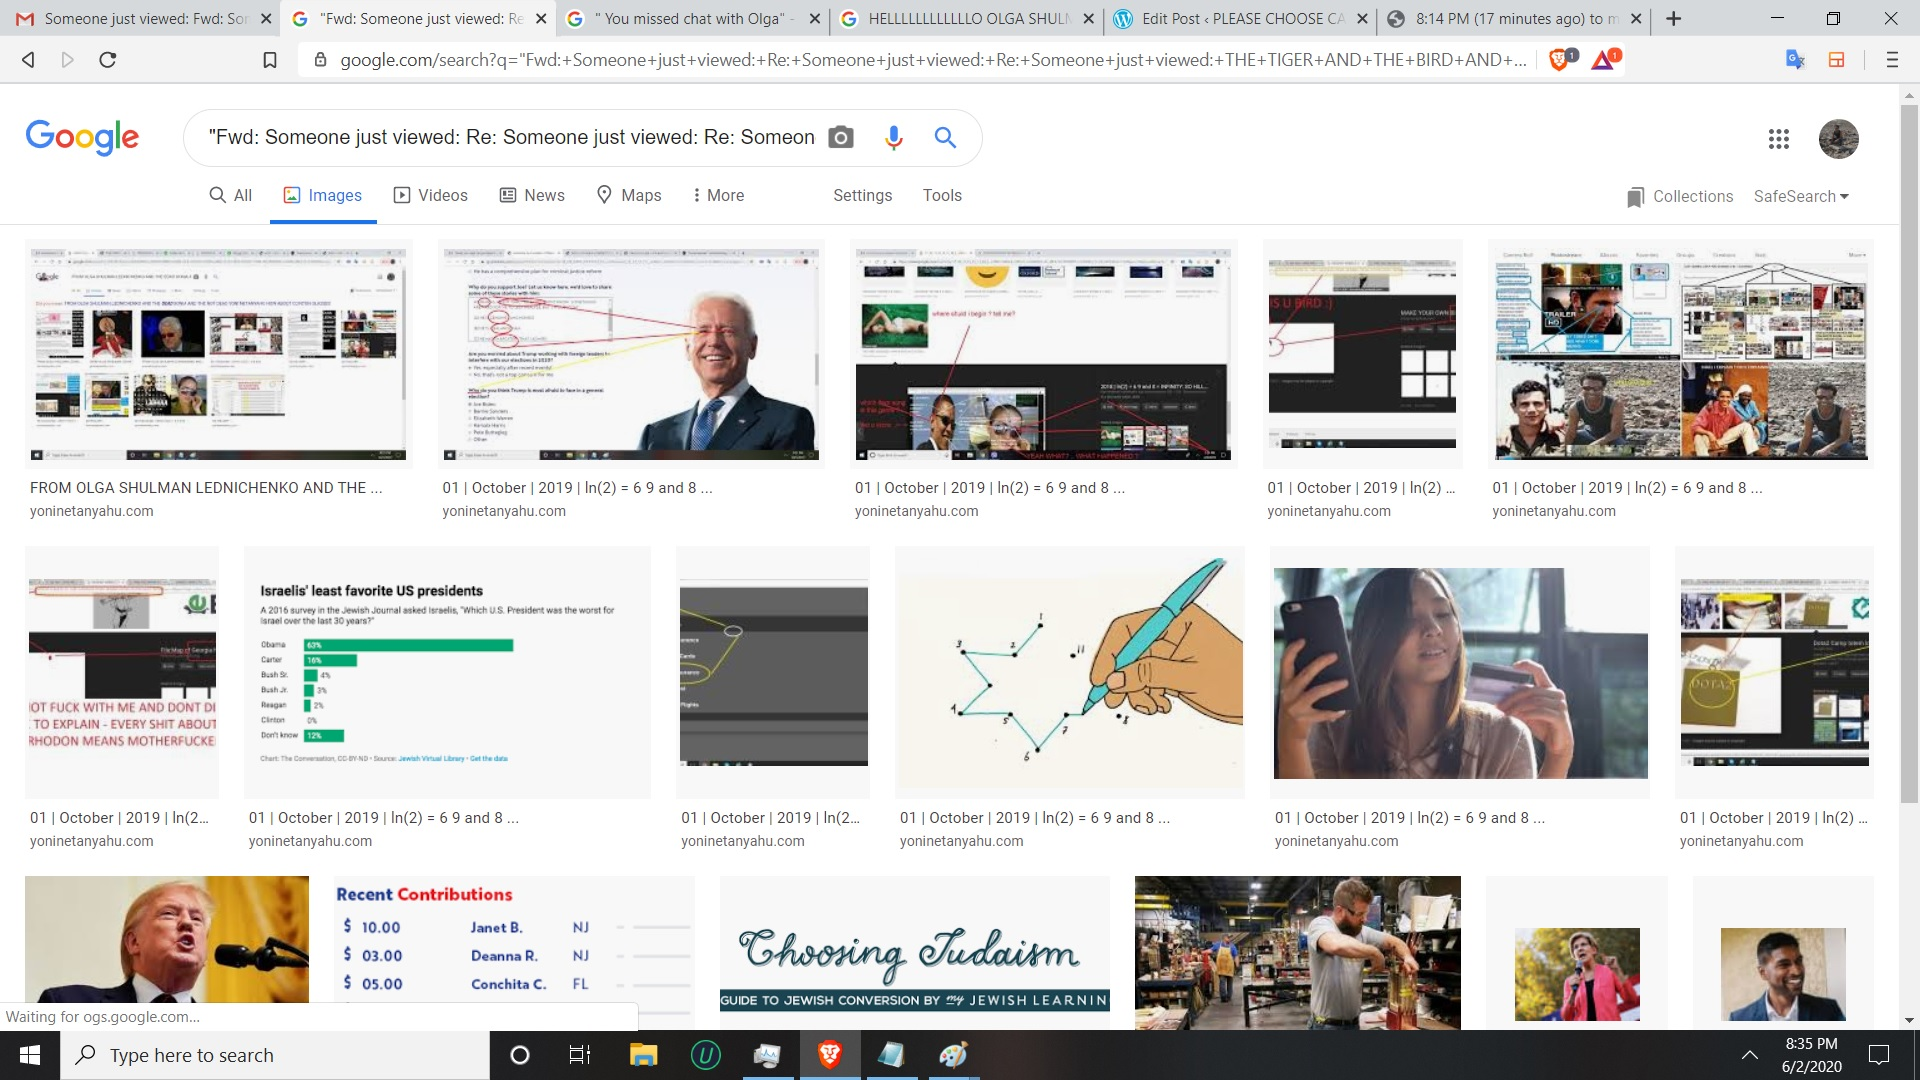 TIGER AND THE BIRD AND THAT GUASSIAN PRIME NUMBER FROM 1987 IS GAUSSIAN PRIME MISTER BIDEN ITS A LUCKY RPIME AND SLYVESTER STALONE - HERO ORF HERO ASALMAN KHAN PRIME NUMBER MISTER BIDEN